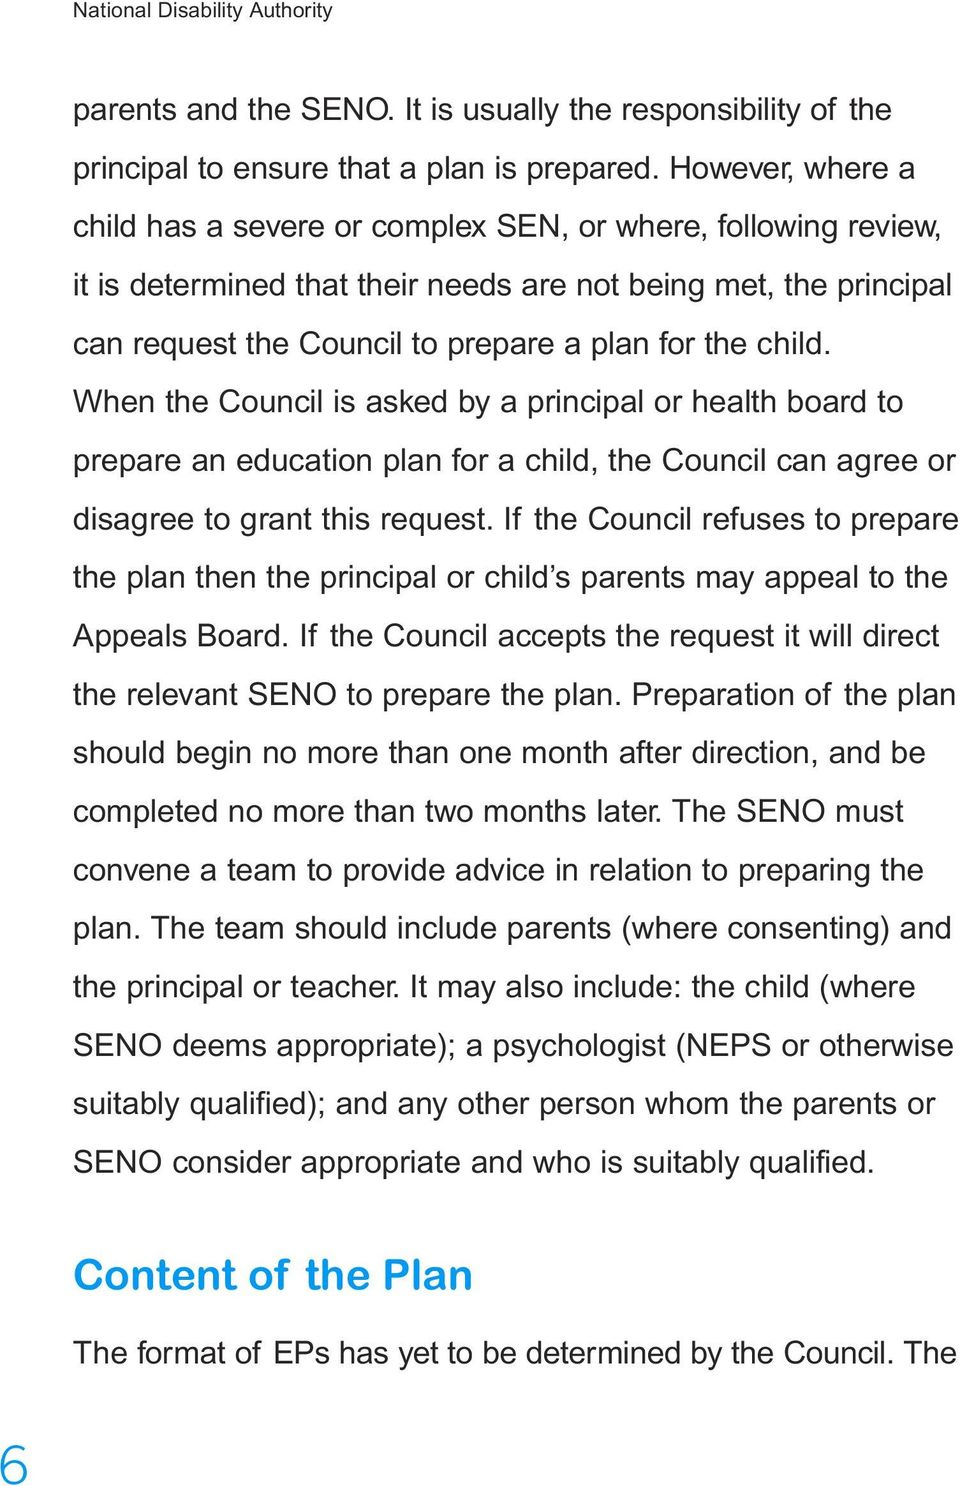 child. When the Council is asked by a principal or health board to prepare an education plan for a child, the Council can agree or disagree to grant this request.